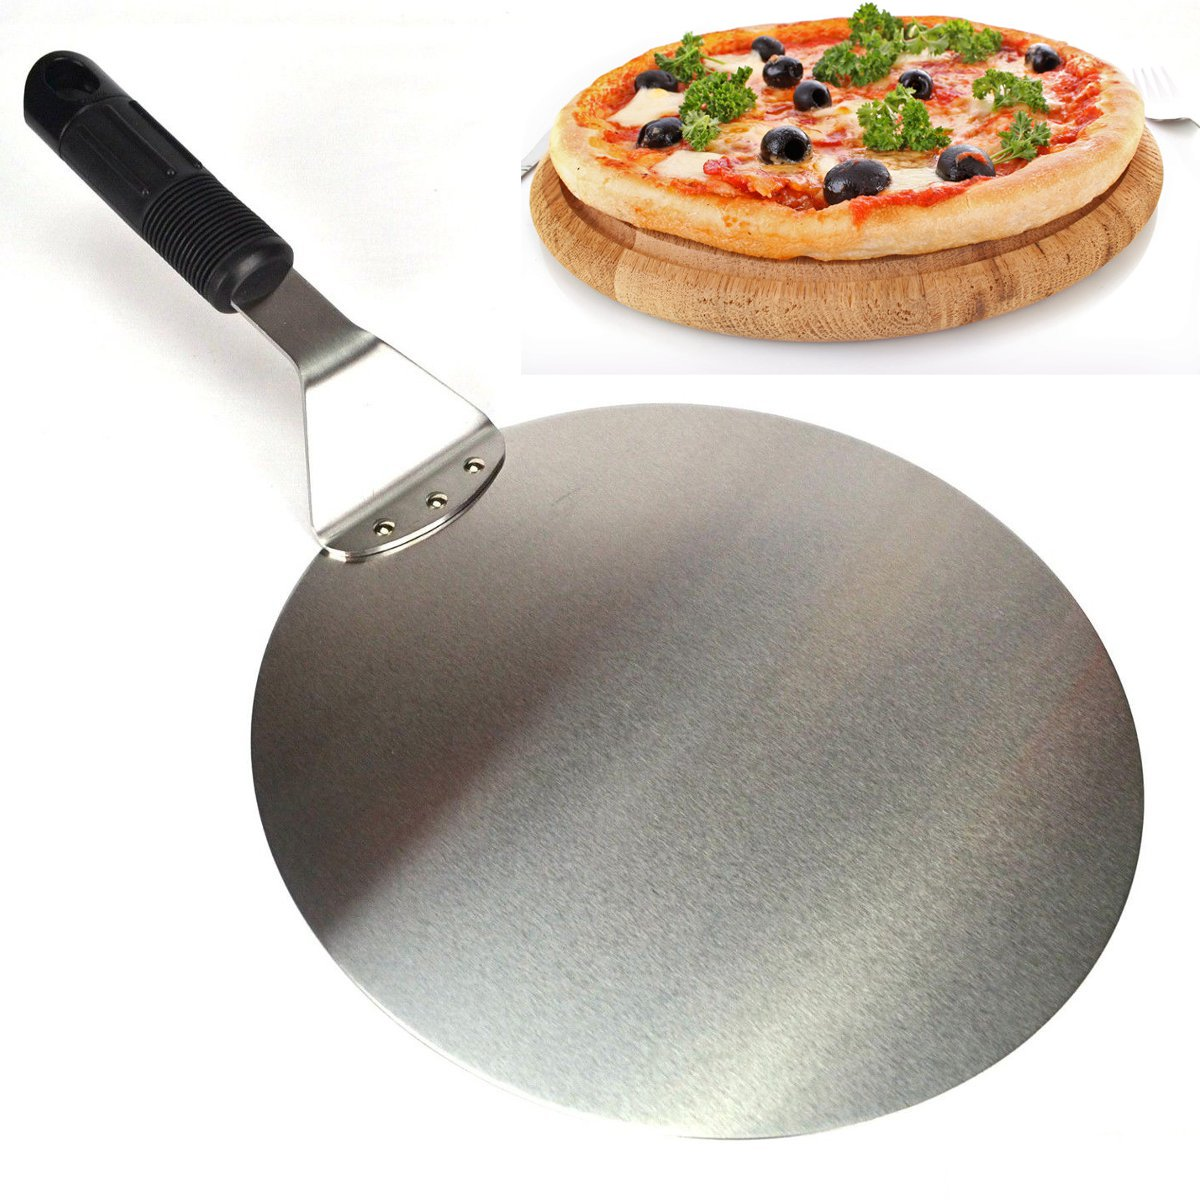 10'' Round Stainless Steel Pizza Spatula Peel Shovel Turner Cake Lifter Tray Pan by